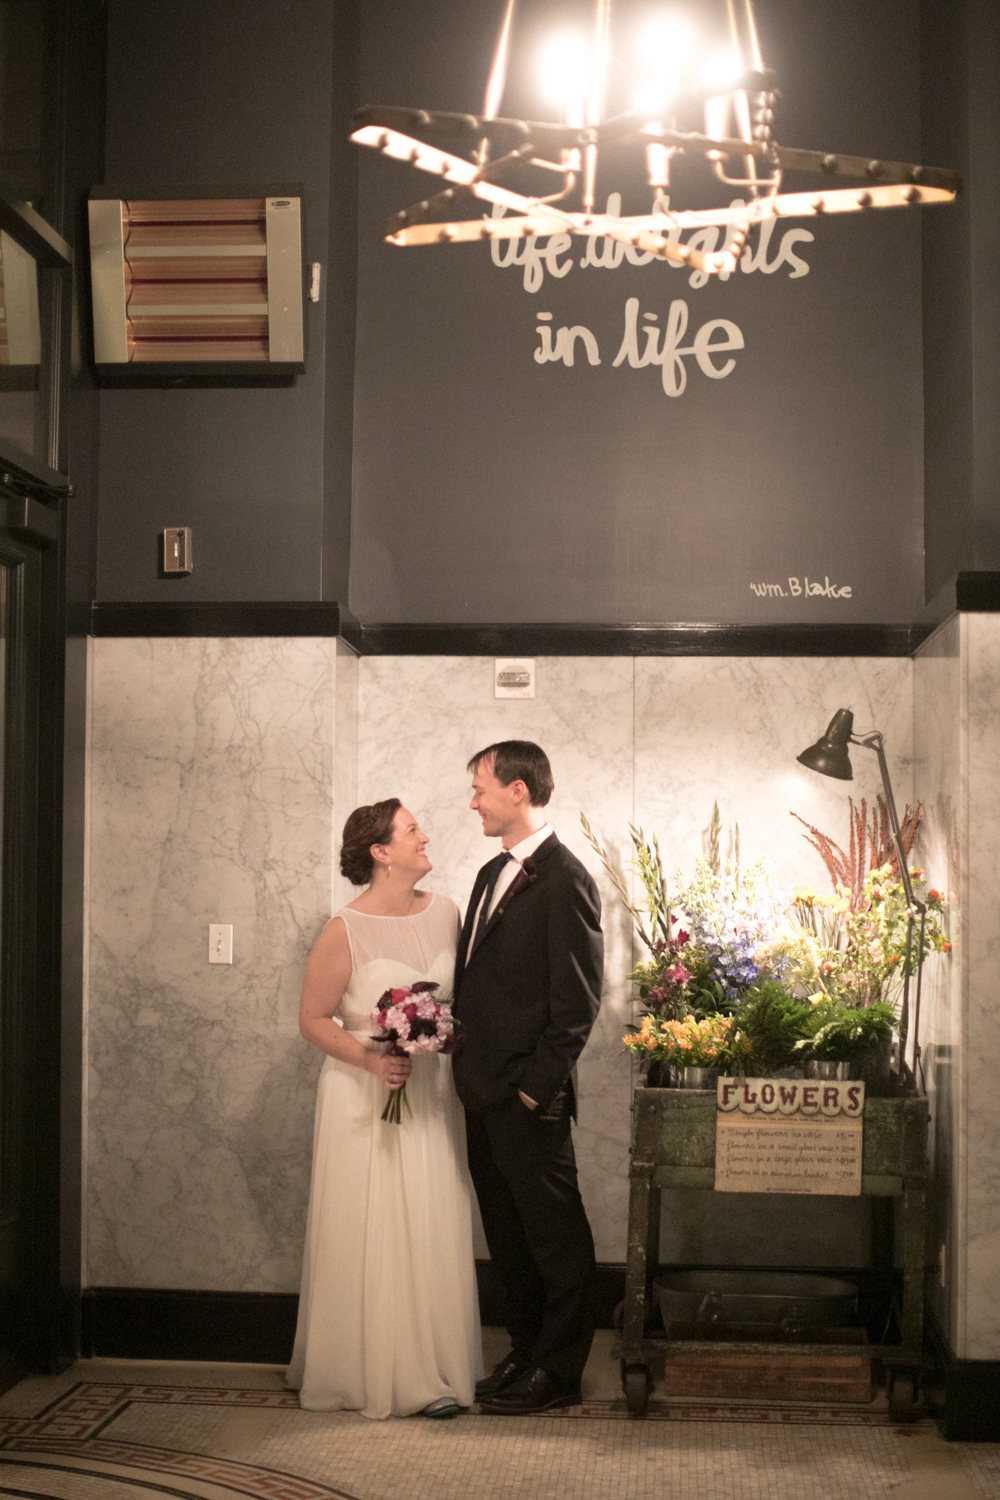 Portrait of a bride and groom at their ACE Hotel wedding reception.